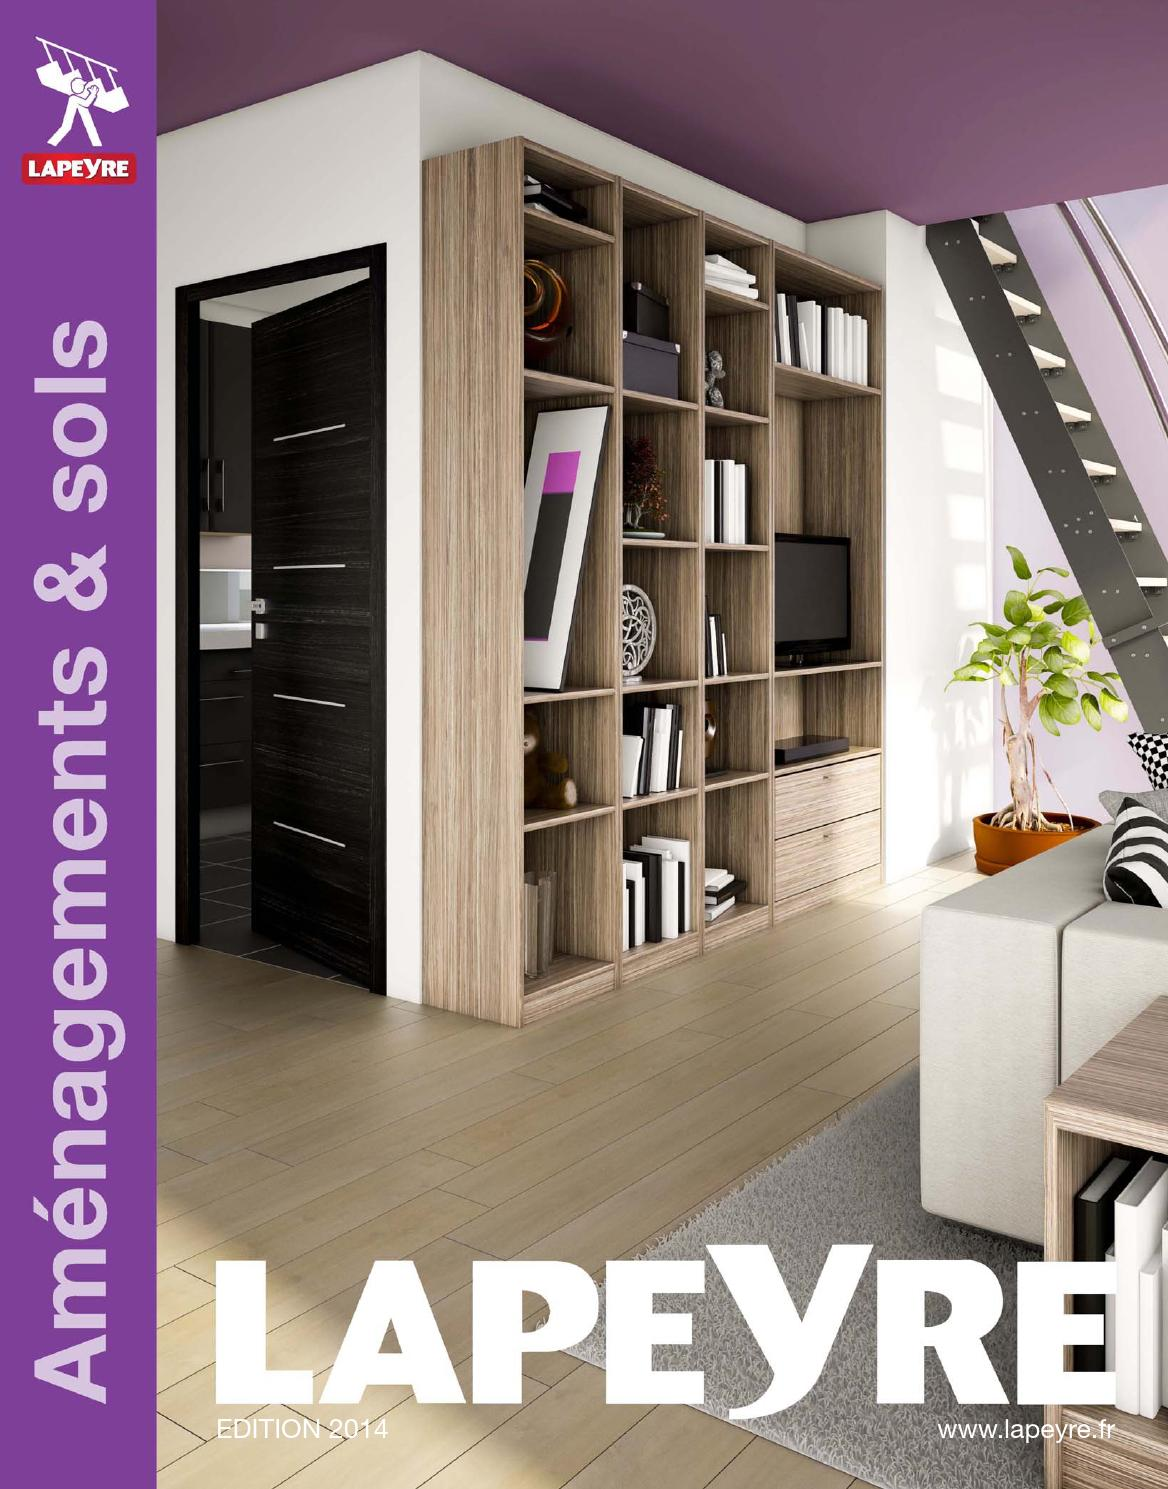 Catalogue Lapeyre - Aménagements & sols 2014 by joe monroe ...